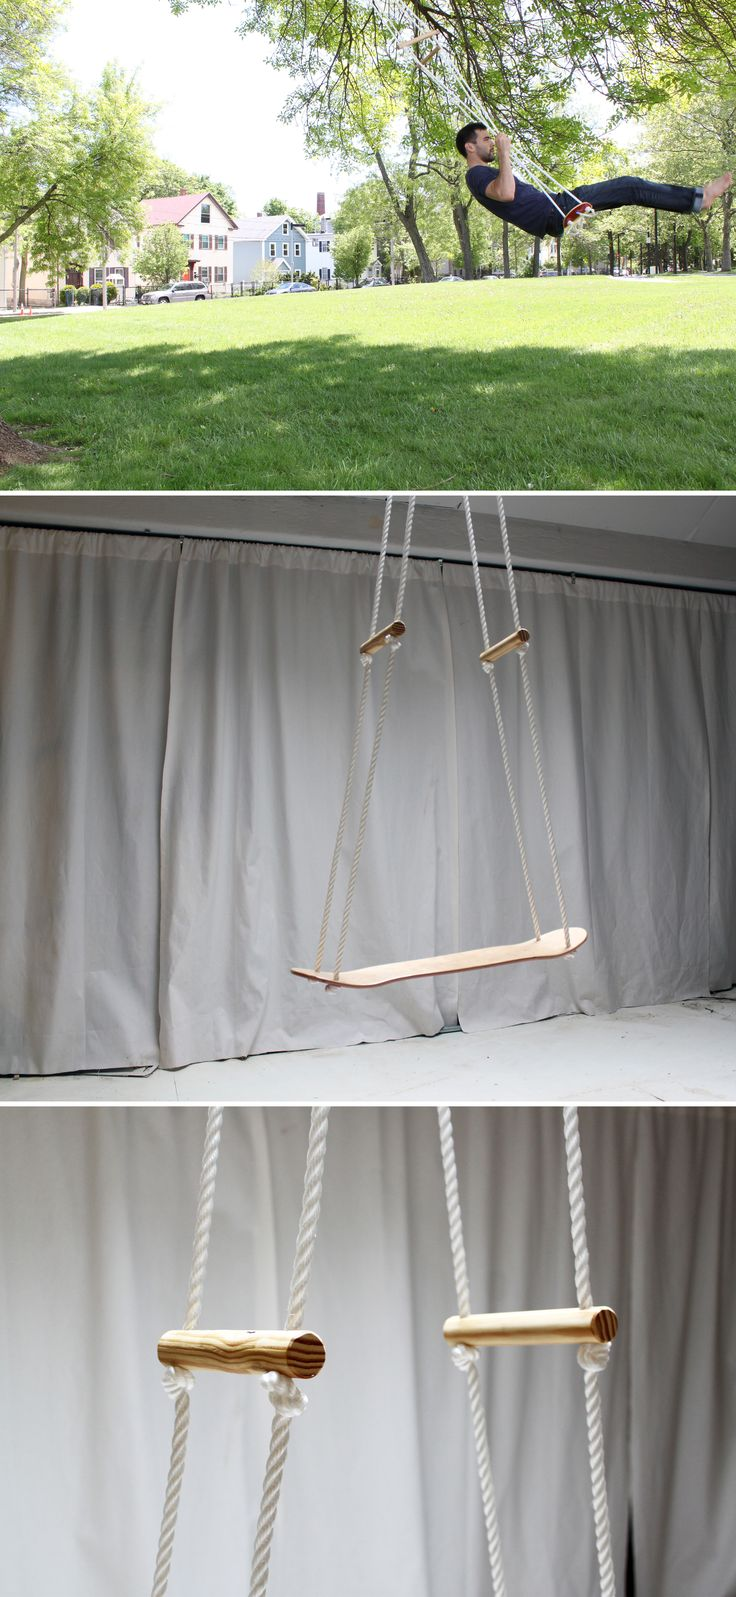 Use a skateboard to make a comfortable swing for your backyard. Check out the website for instructions: http://www.homemade-modern.com/ep35-the-skate-swing/